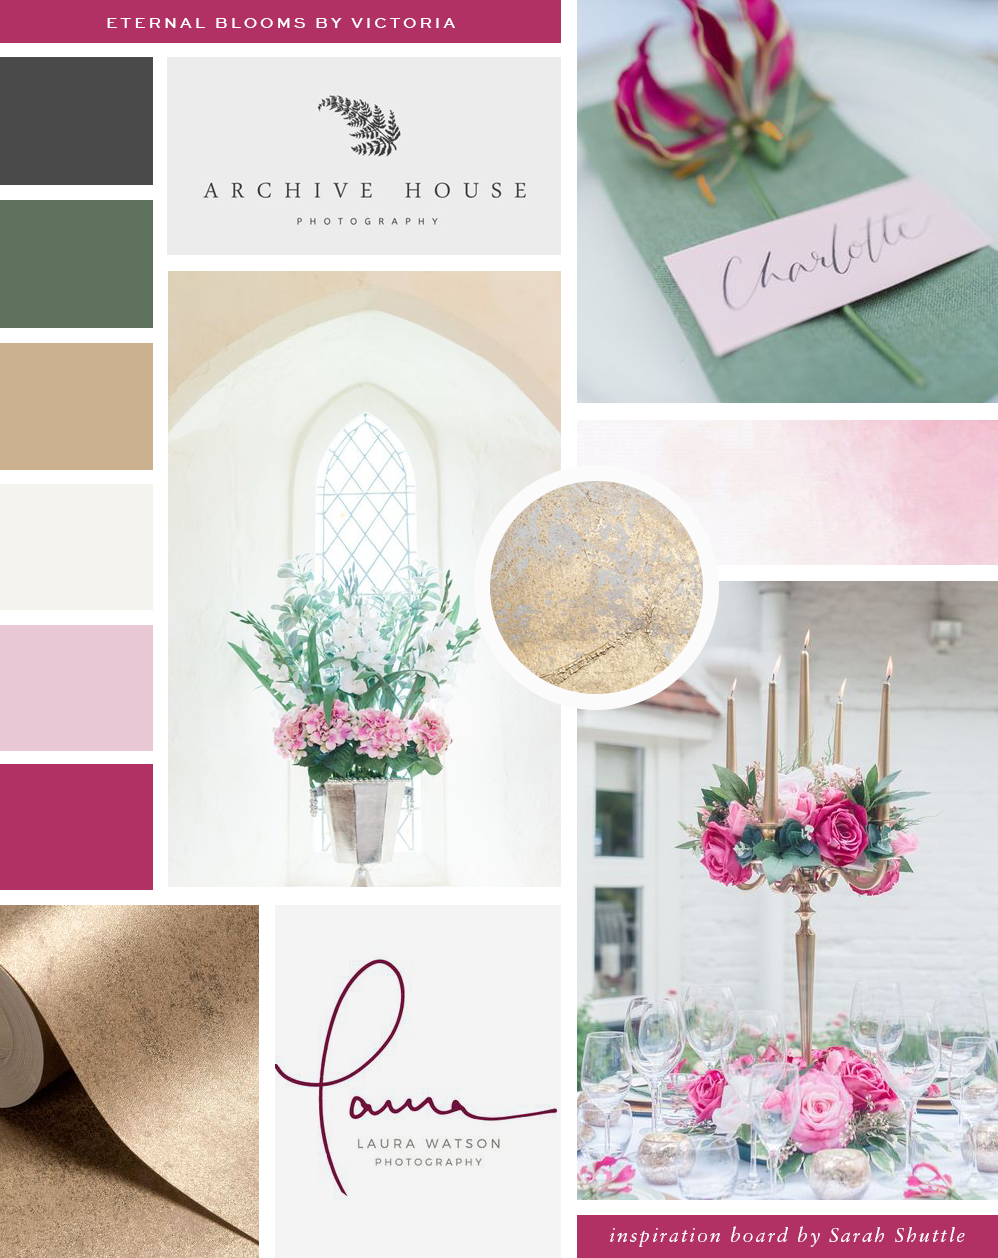 Mood board, inspiration board, branding, brand design, web design, brand styling for Eternal Blooms by Victoria. Faux florist, floral design, luxury florist, feminine branding and custom website design, wedding professional, luxury wedding business branding, female entrepreneur, high-end service branding, luxury web design, feminine web design. Pink, green, gold colour palette. Flowers, floristry.